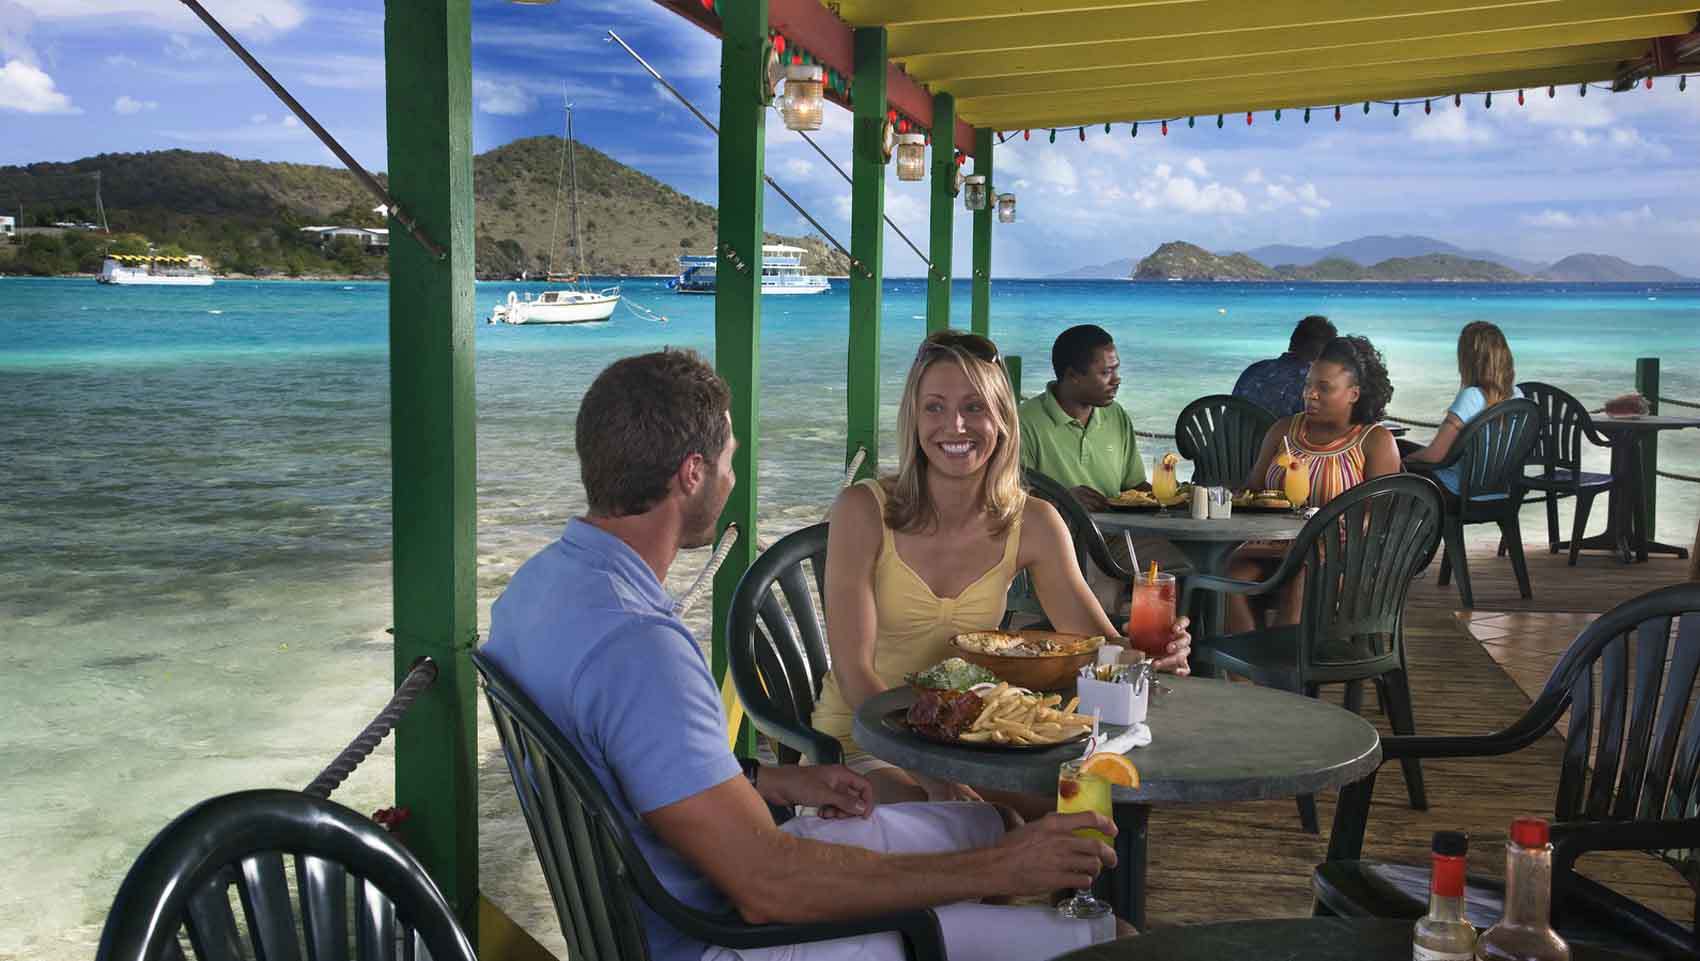 Sea, sun and all smiles on St. Thomas in the U.S. Virgin Islands for historian's and an adventure-seeker's.